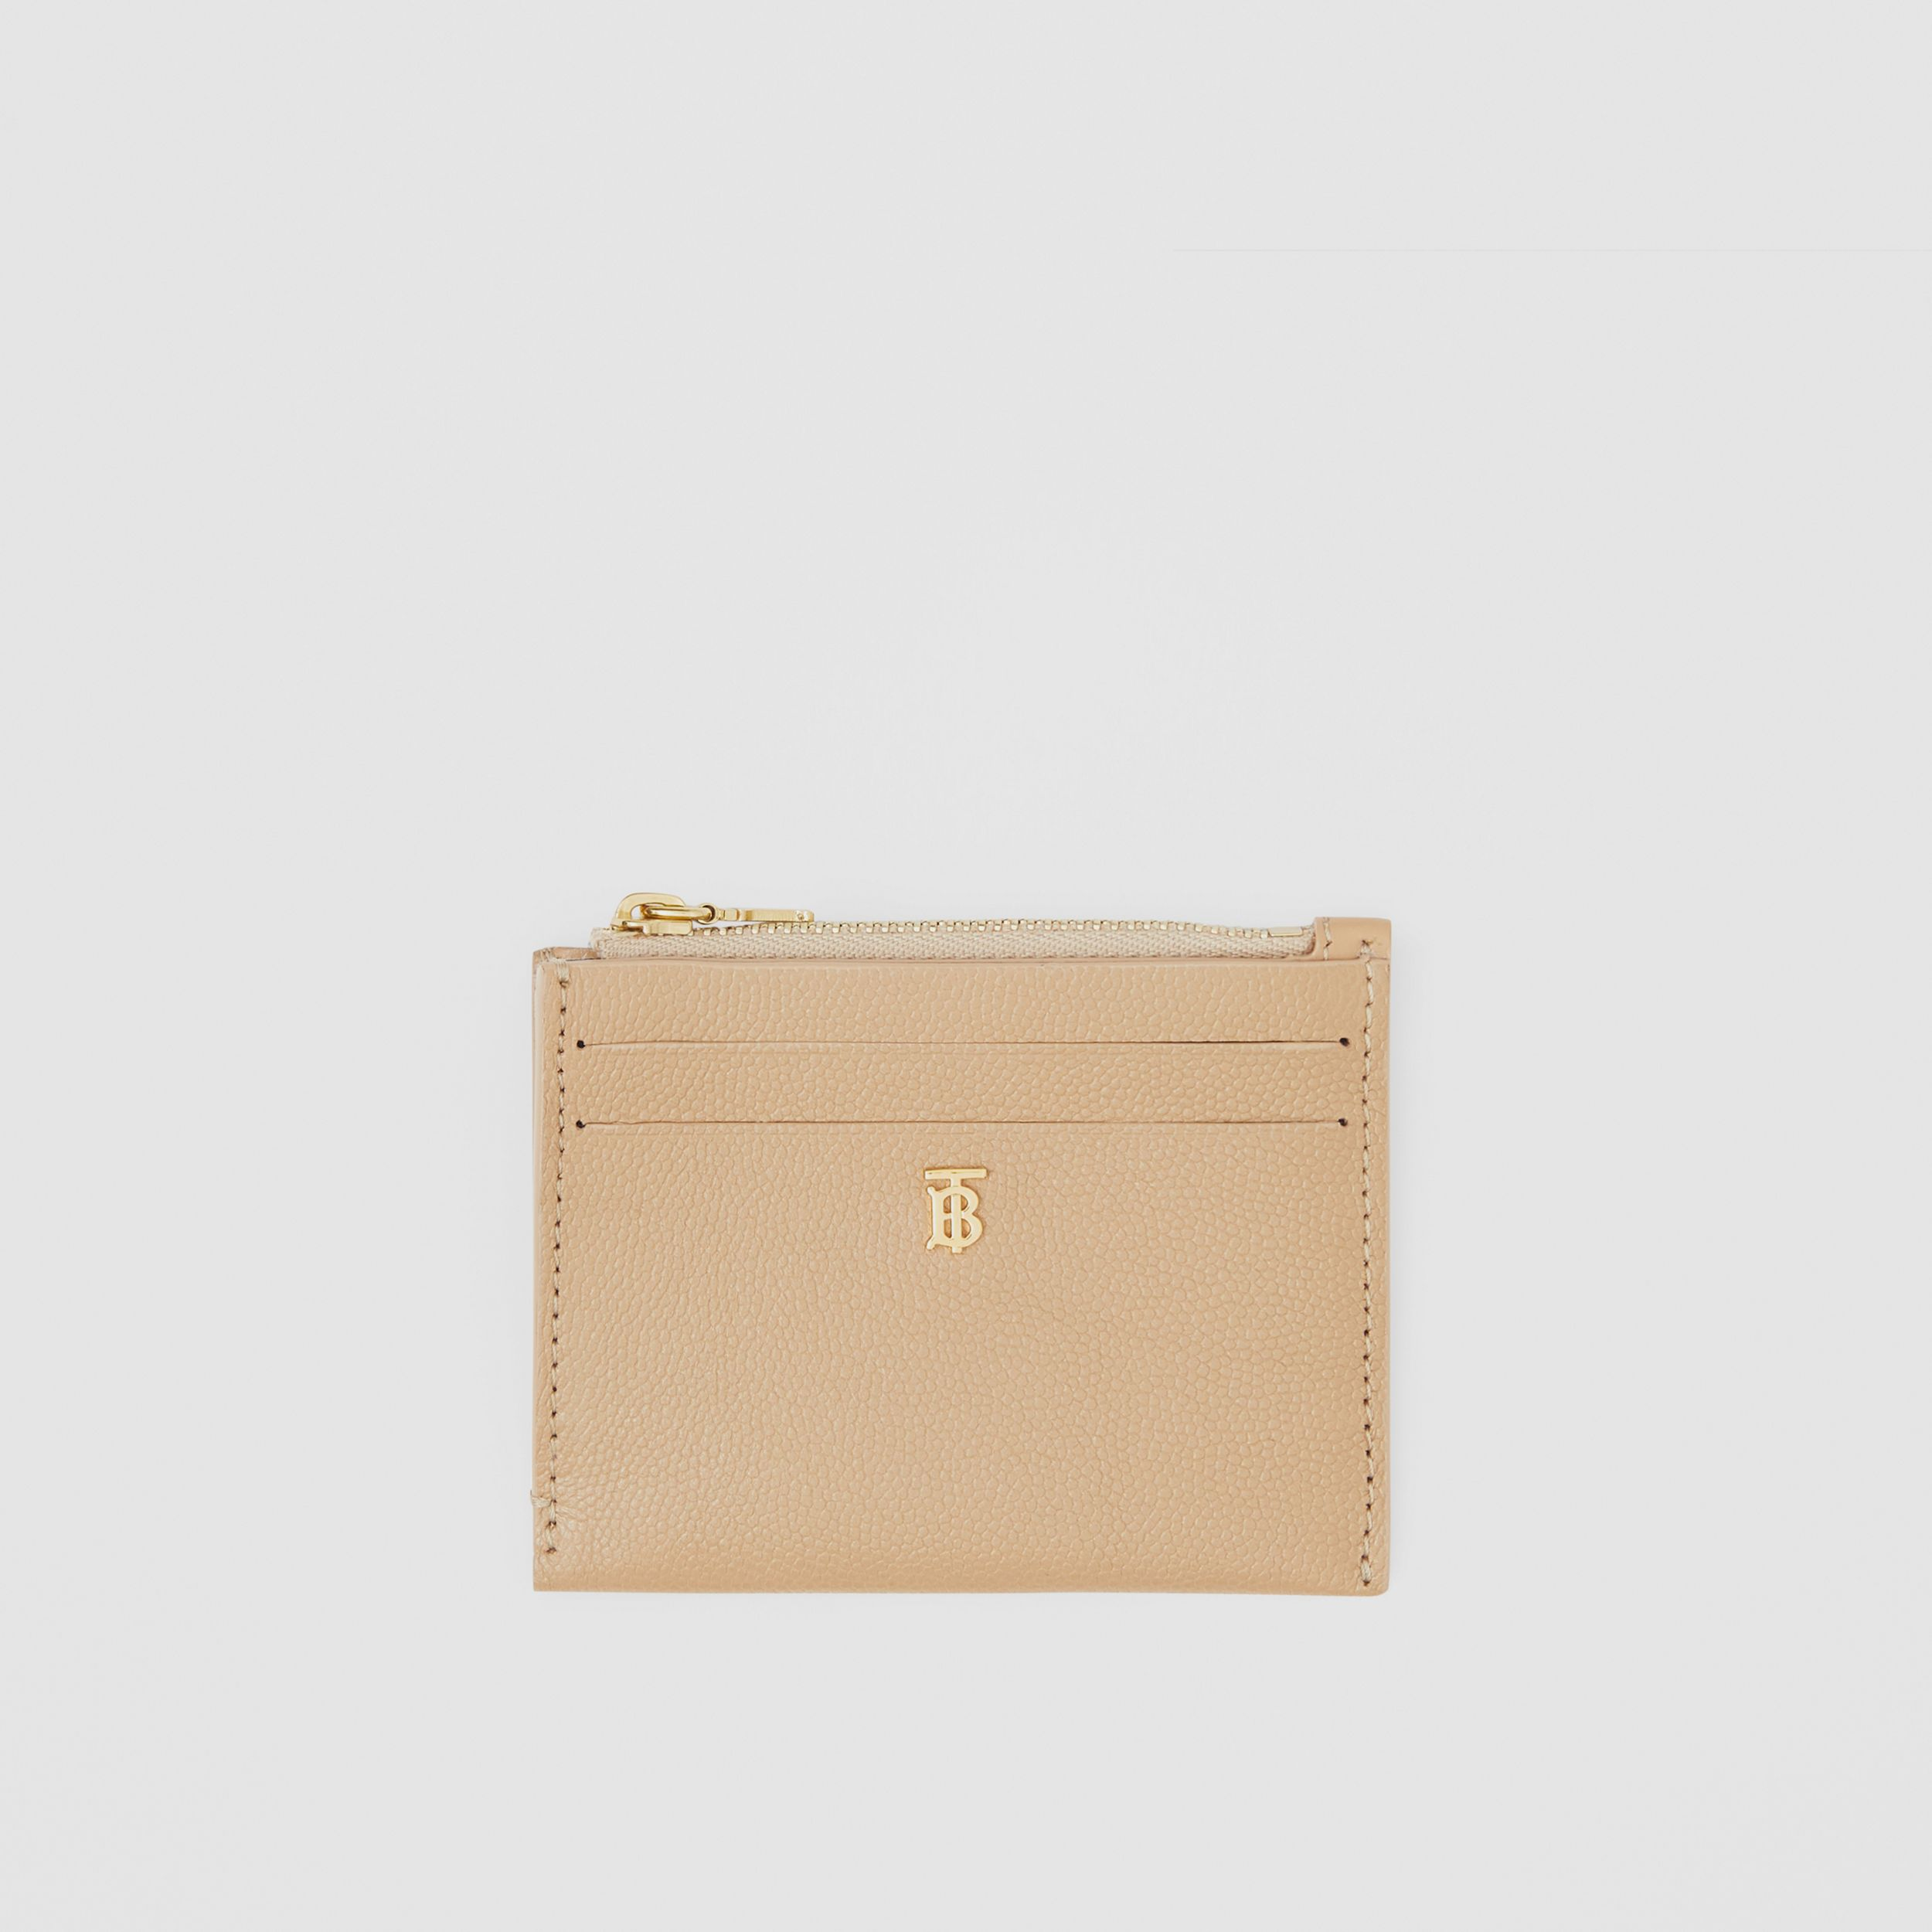 Monogram Motif Grainy Leather Zip Card Case in Archive Beige - Women | Burberry - 1